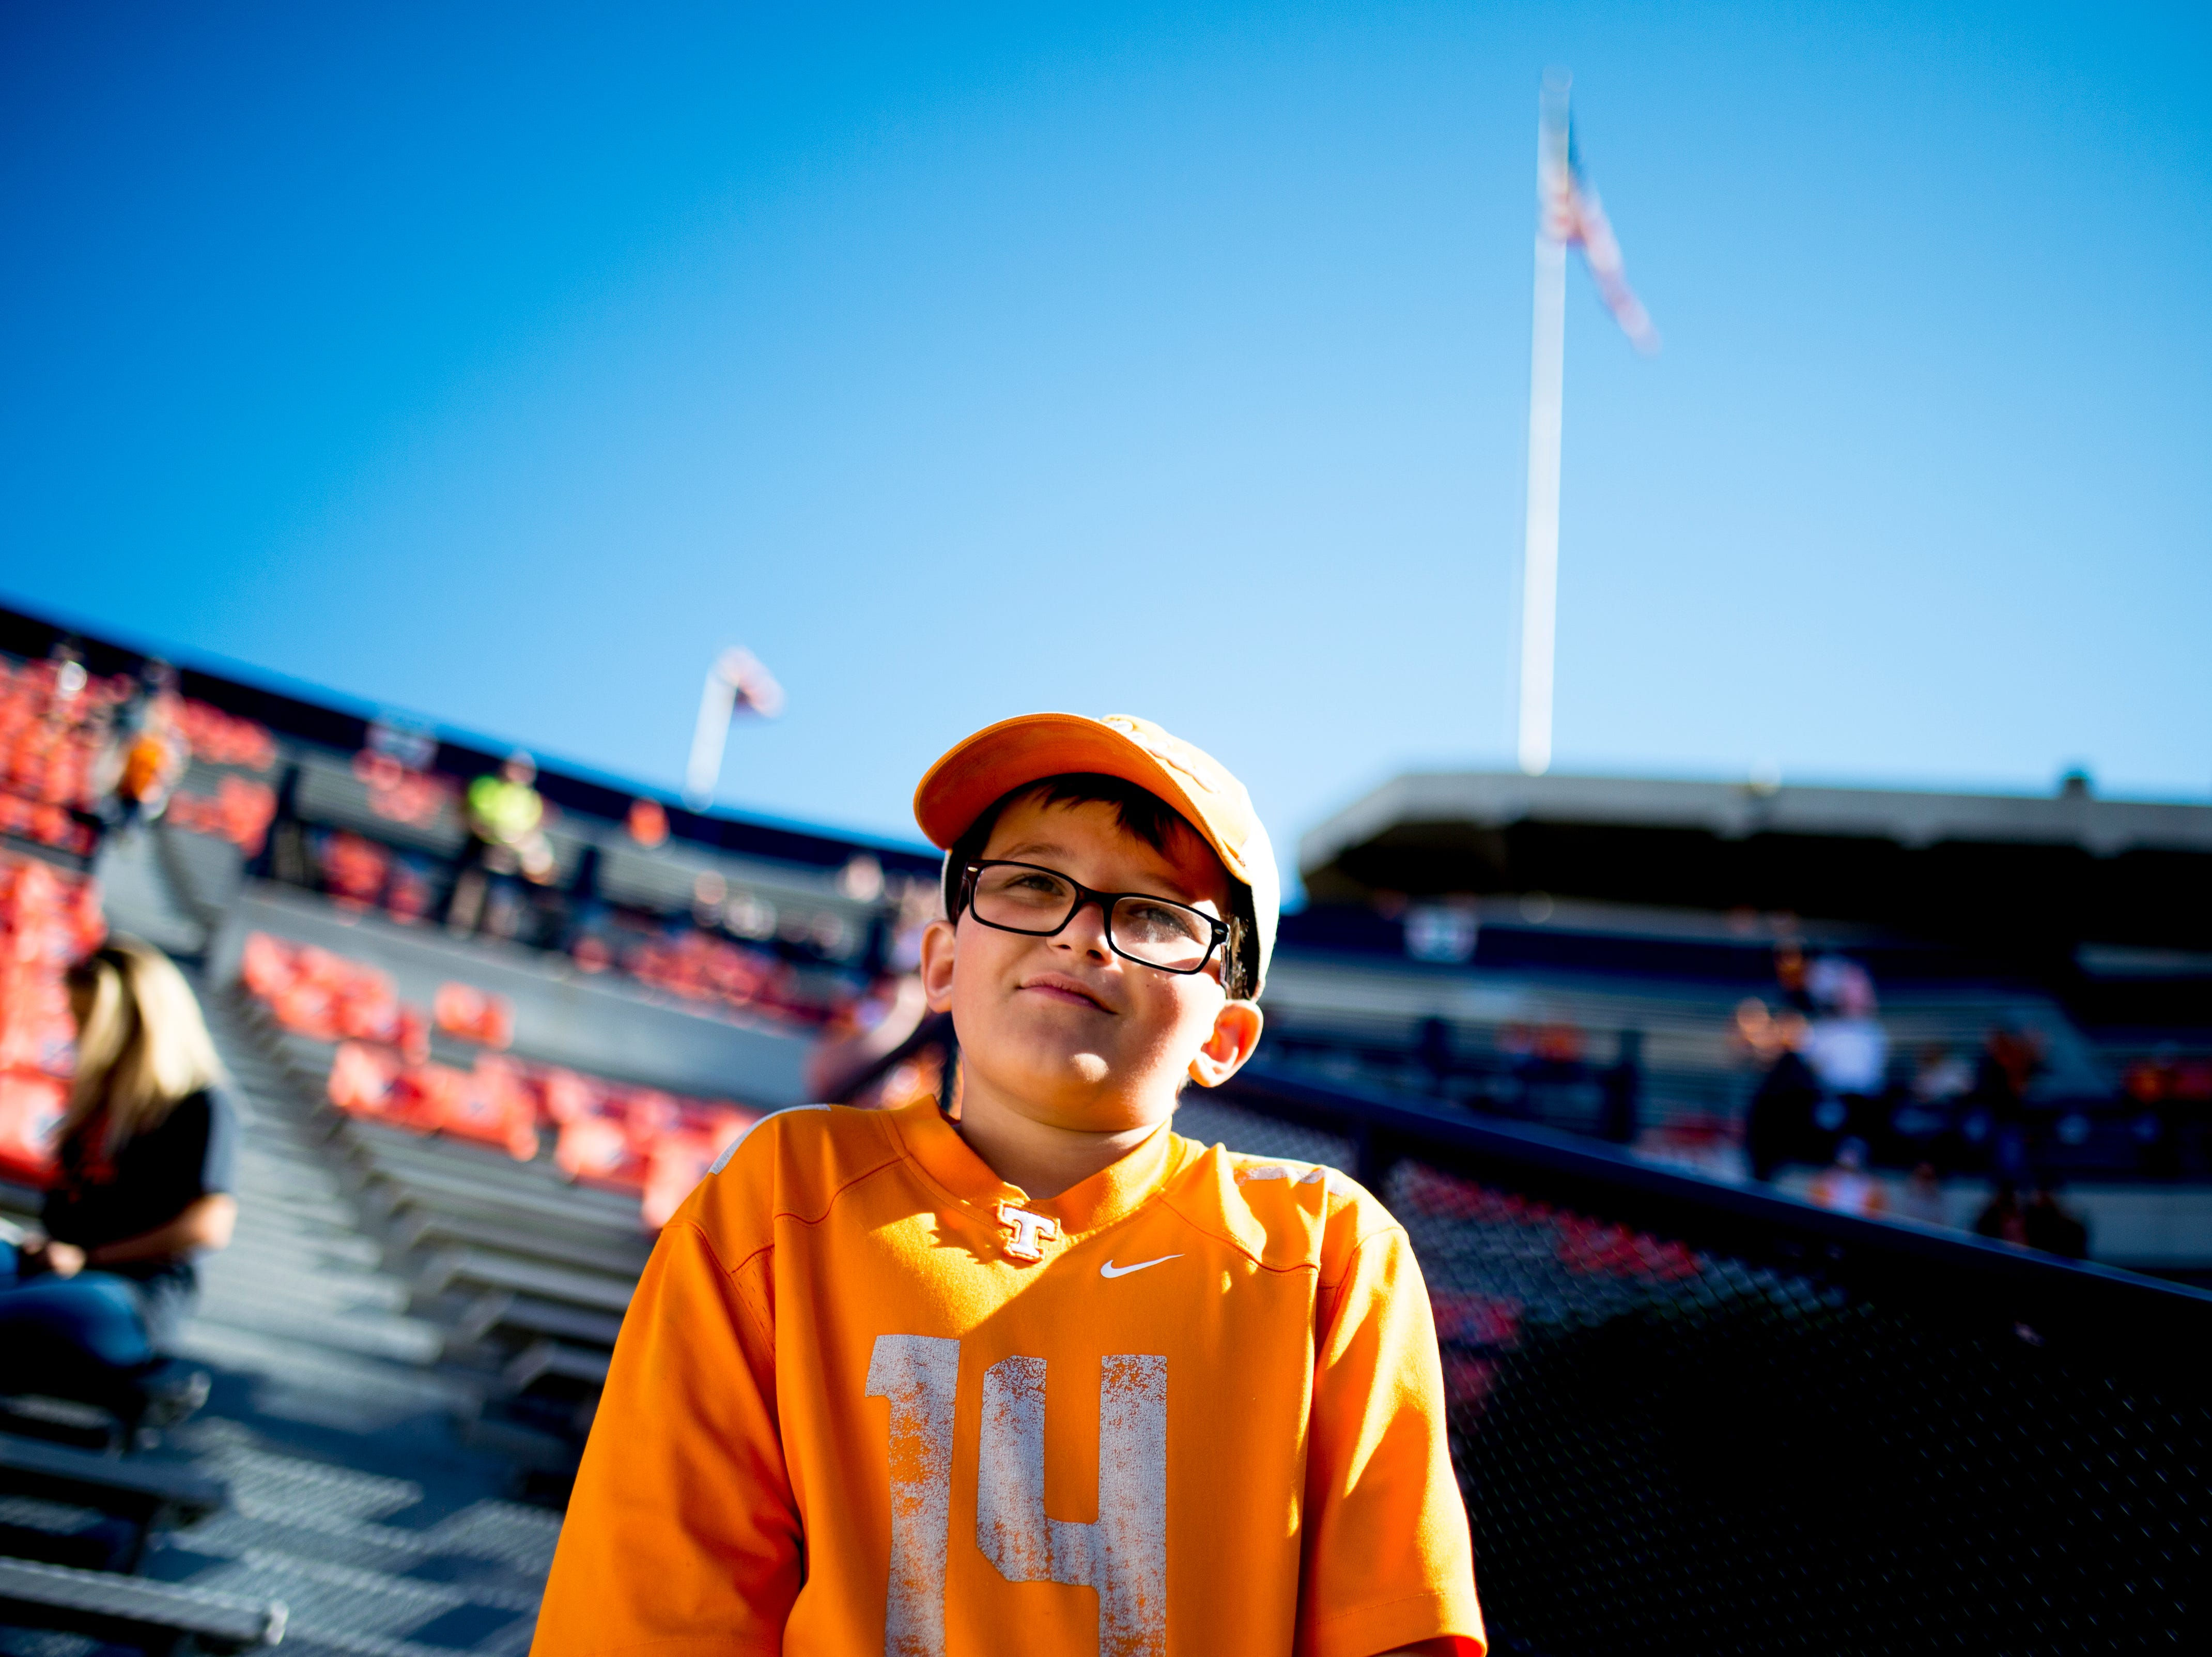 A young Vol fan looks onto the field during a game between Tennessee and Auburn at Jordan-Hare Stadium in Auburn, Alabama on Saturday, October 13, 2018.